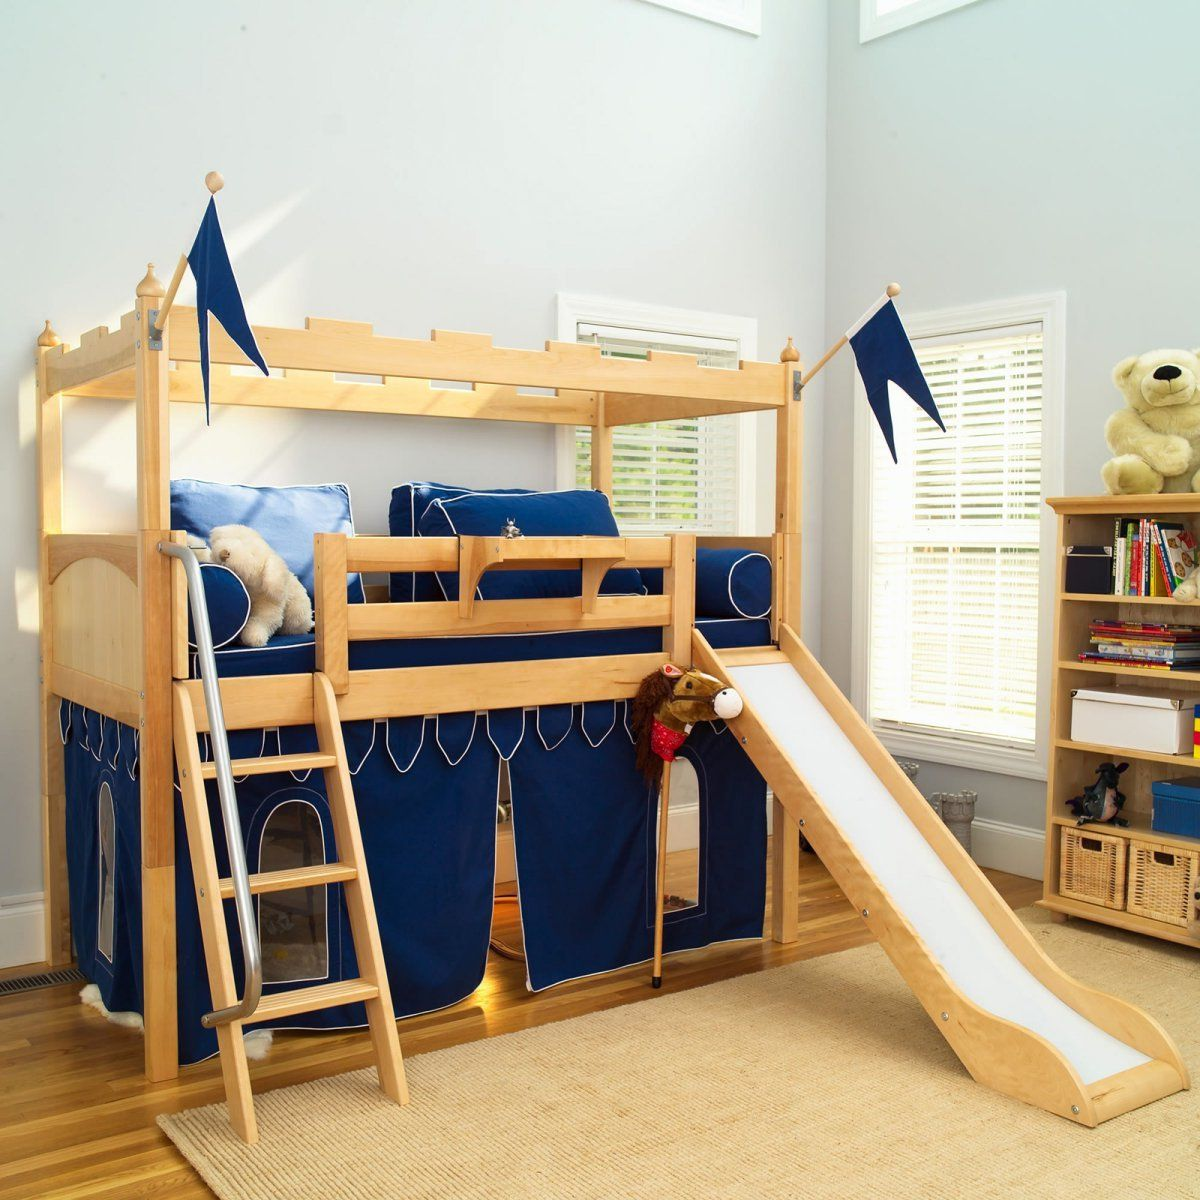 Loft bed with slide plans  Pin by Brian Wilson on for ethan  Pinterest  Bunk Bed Room ideas